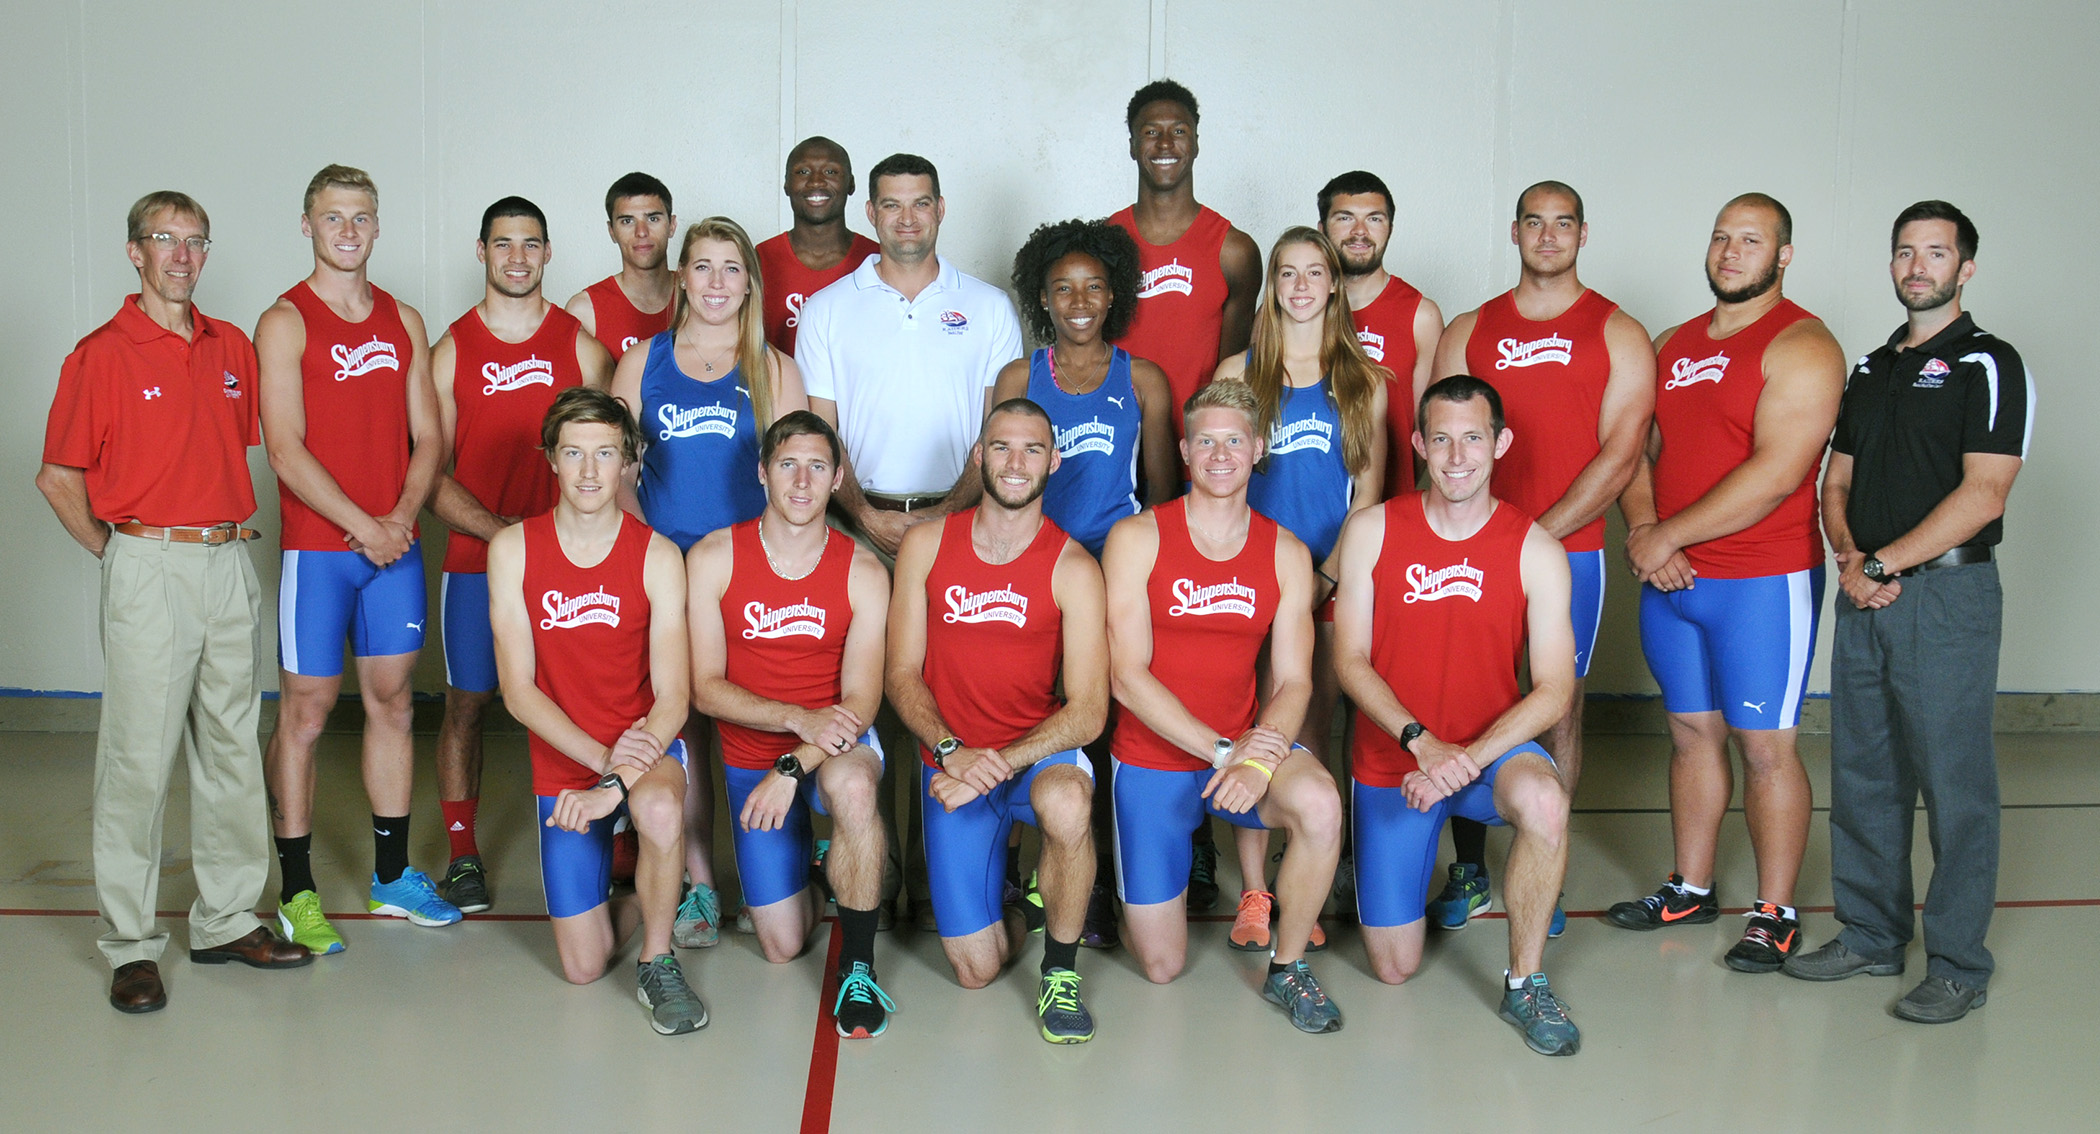 Ship track and field sent 16 individuals (13 men, three women) to the 2015 NCAA Division II Outdoor Track and Field Championships hosted by Grand Valley State University in Allendale, Michigan. Ten of SU's 15 entries earned All-America honors.